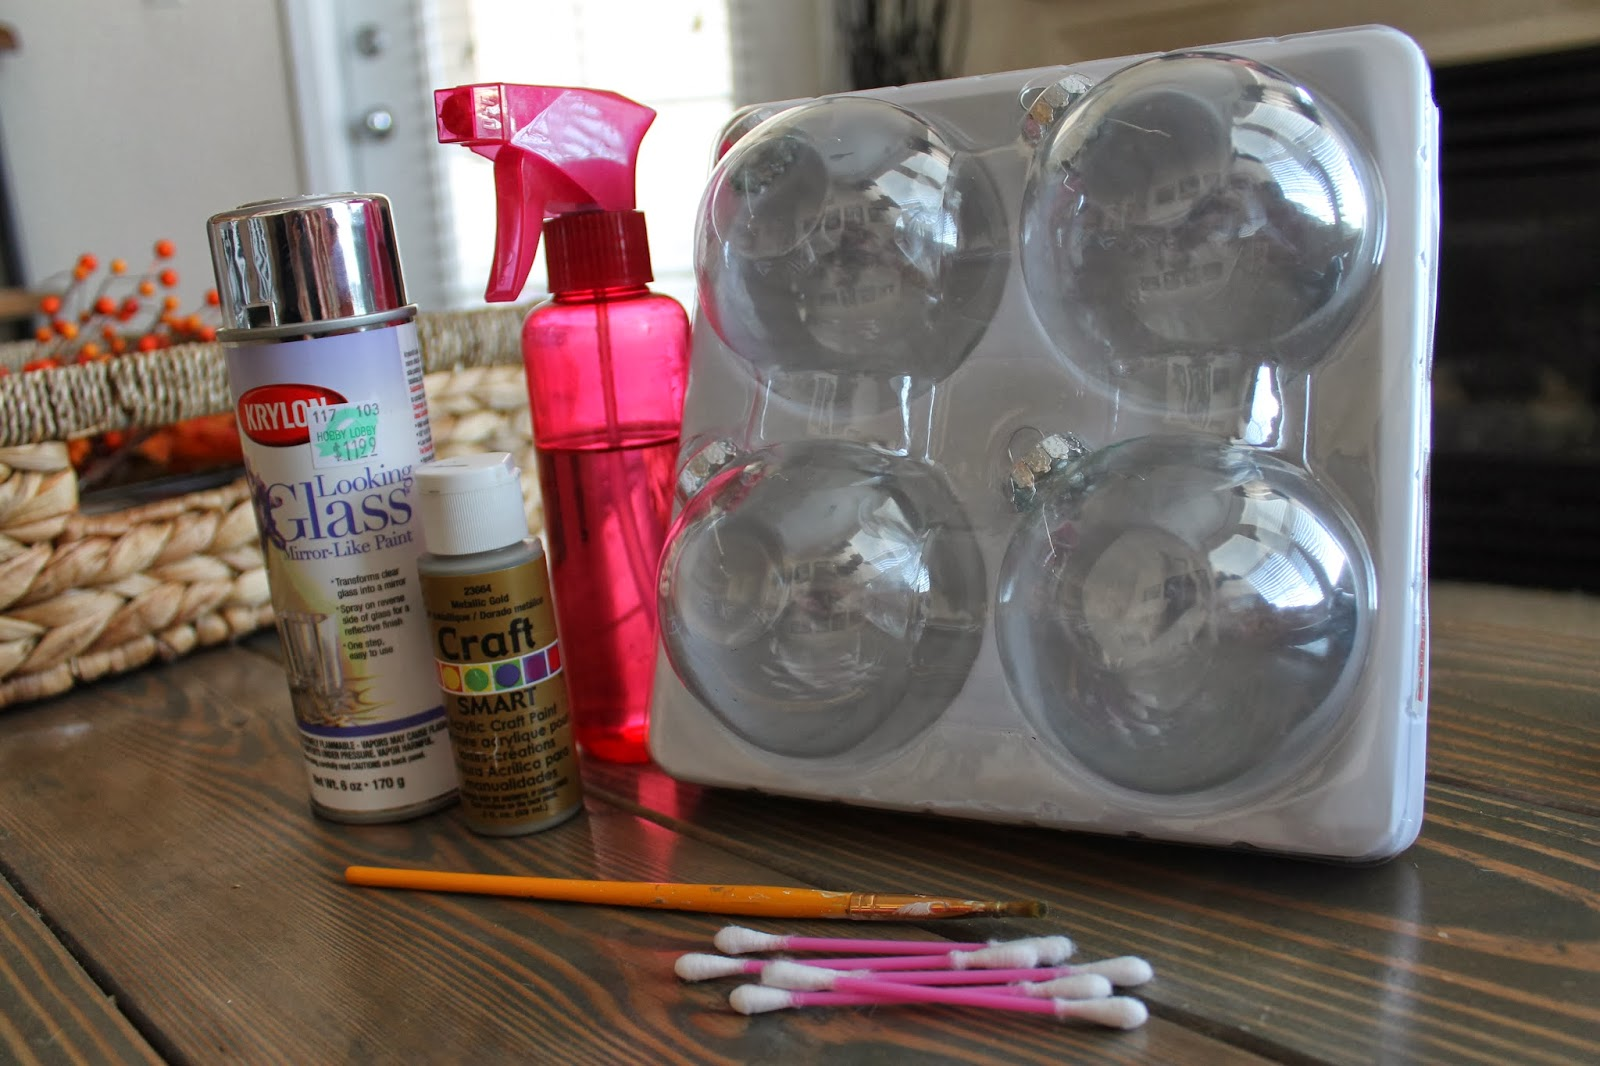 Hobby lobby glass ornaments -  Plus A Hair Dryer Looking Glass Paint Is From Hobby Lobby Ordinary Spray Bottle From Target